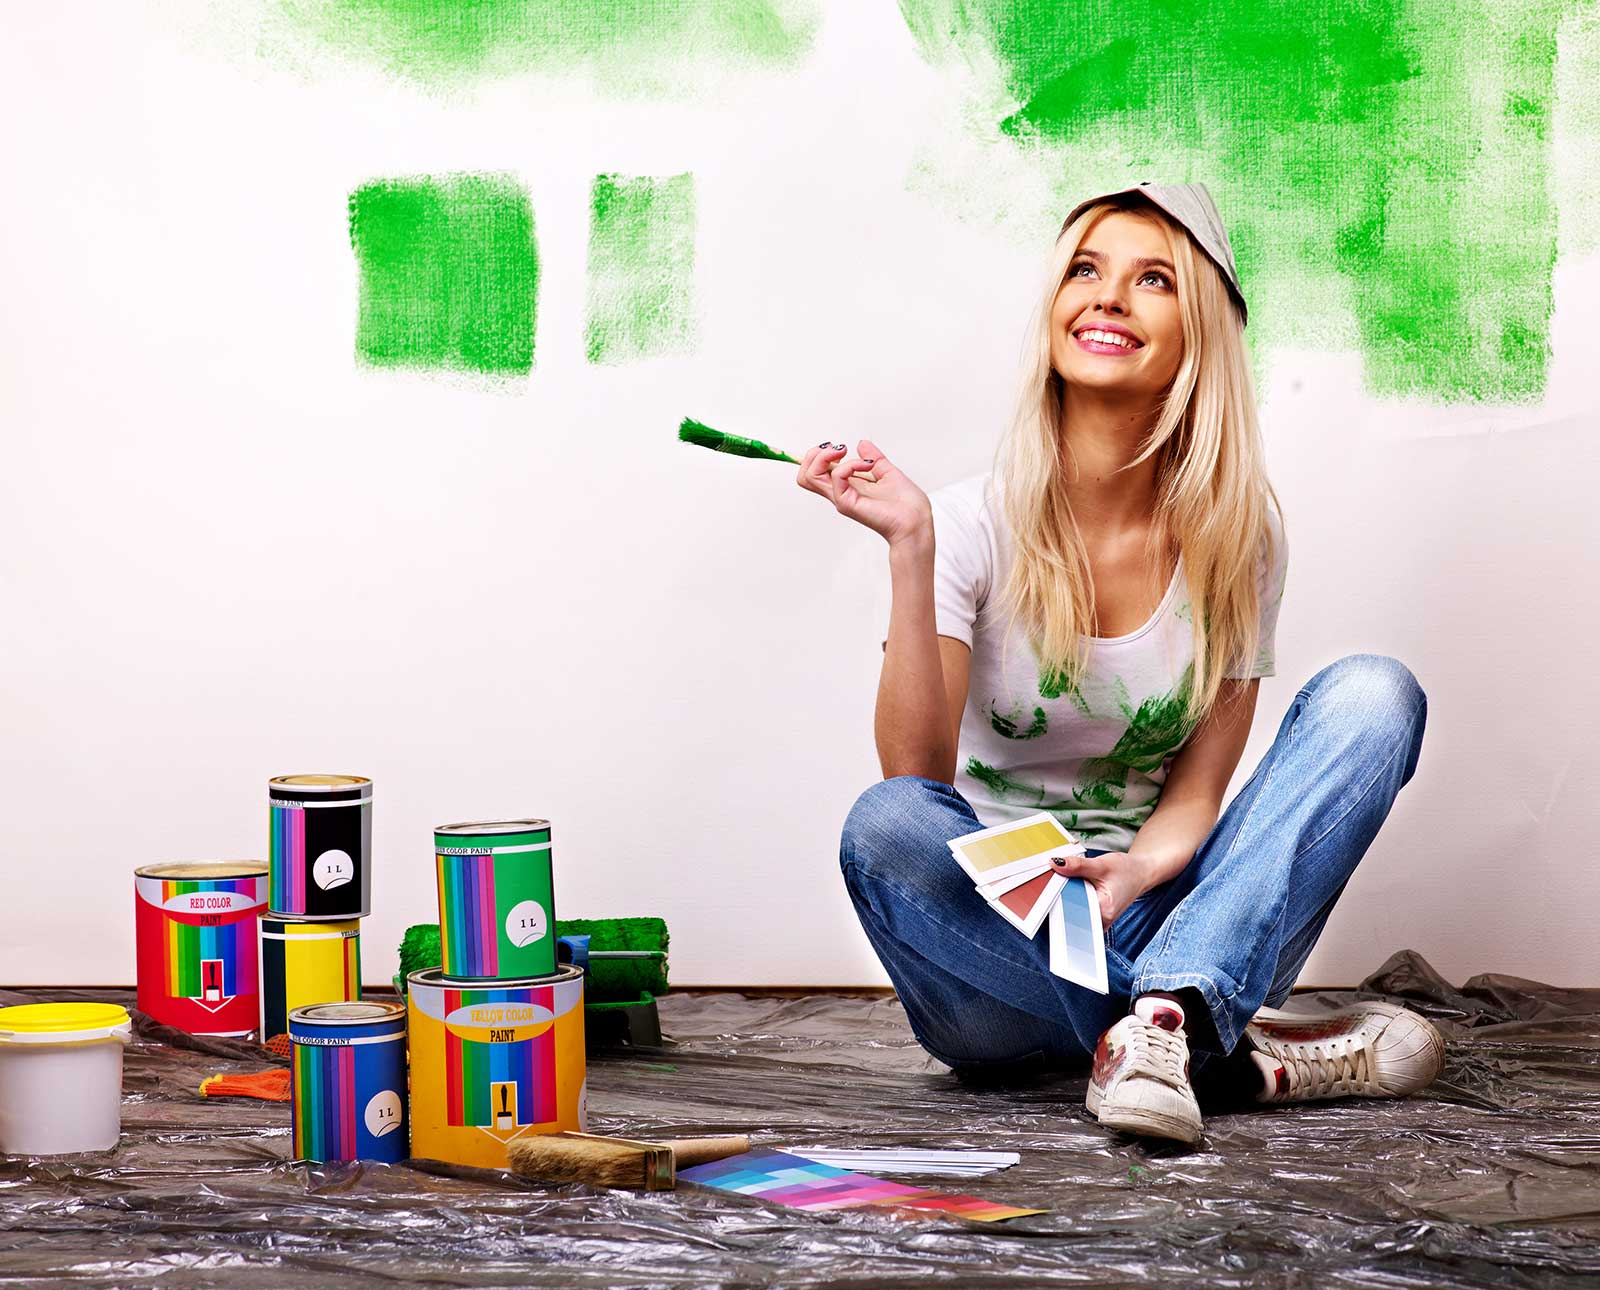 Choosing Non-Toxic Paints for a Healthier Home